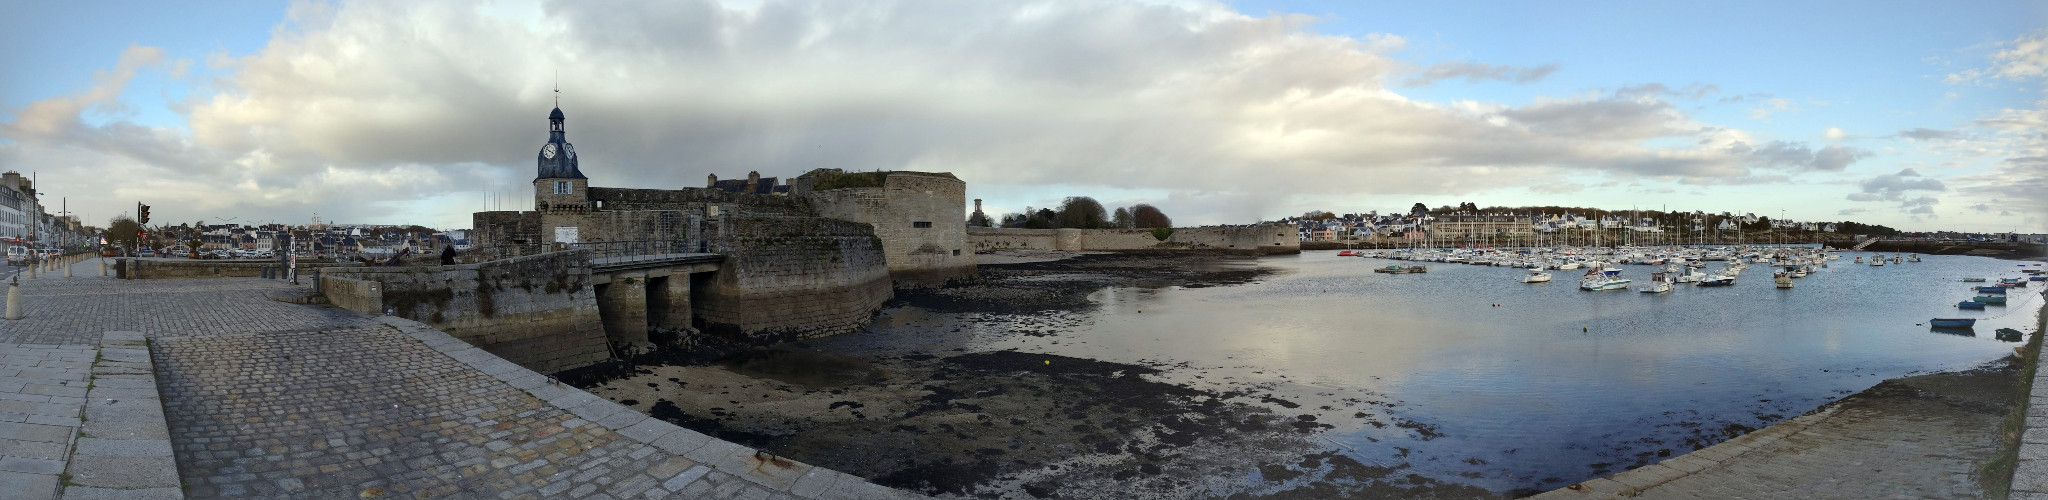 Panoramic of the Ville Close and the Marina of Concarneau